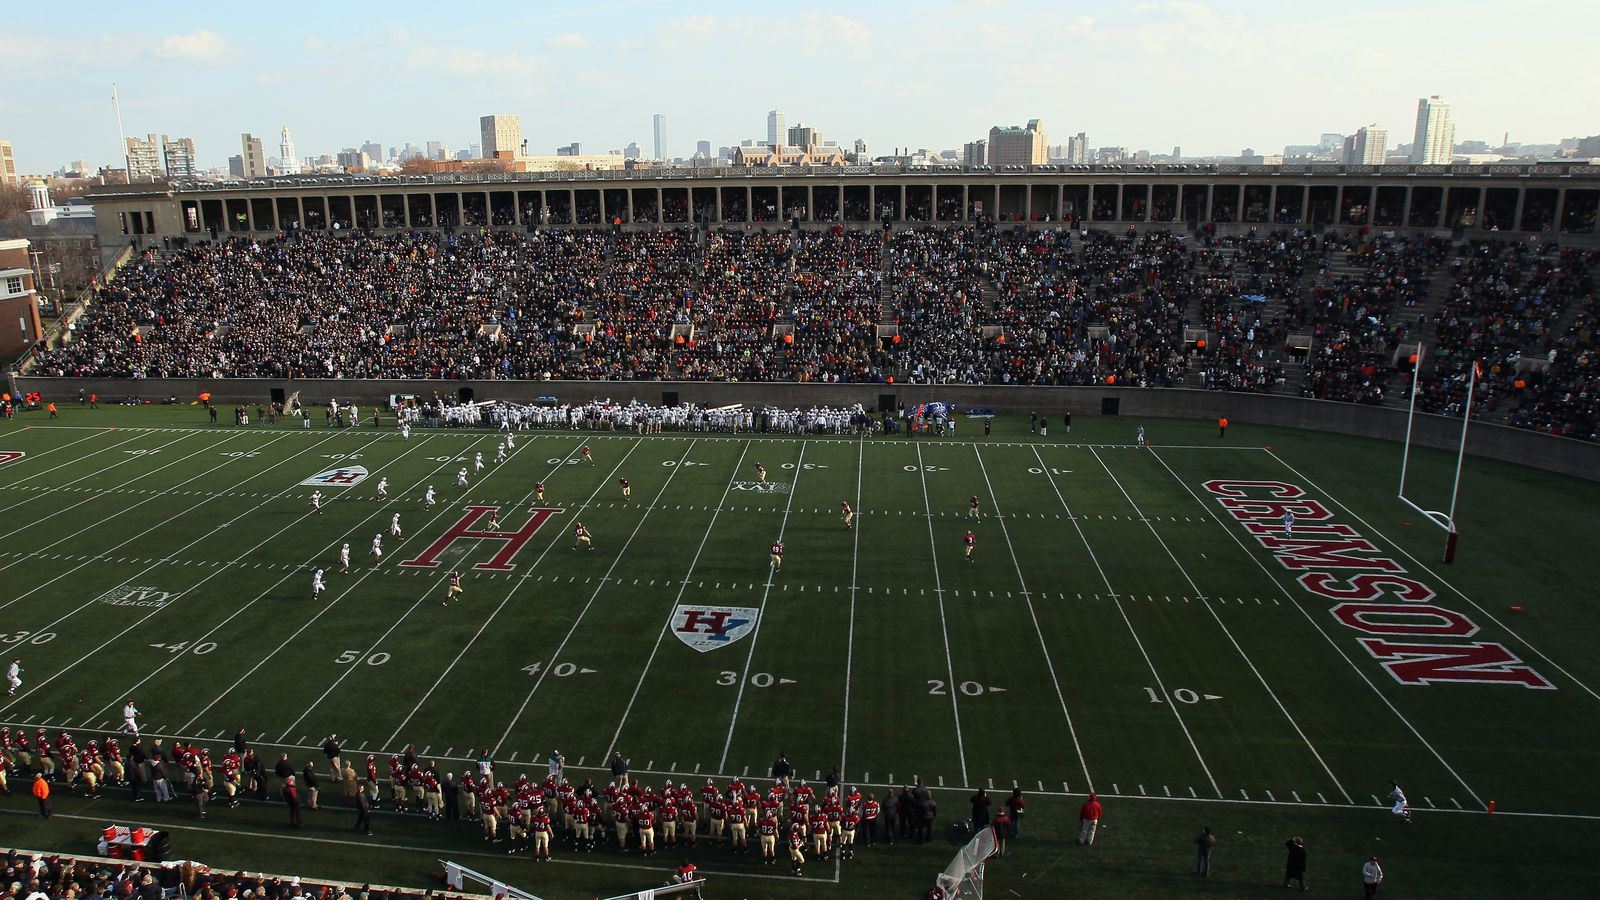 Ivy League Moving Kickoffs Up To 40 Yard Line For 2016